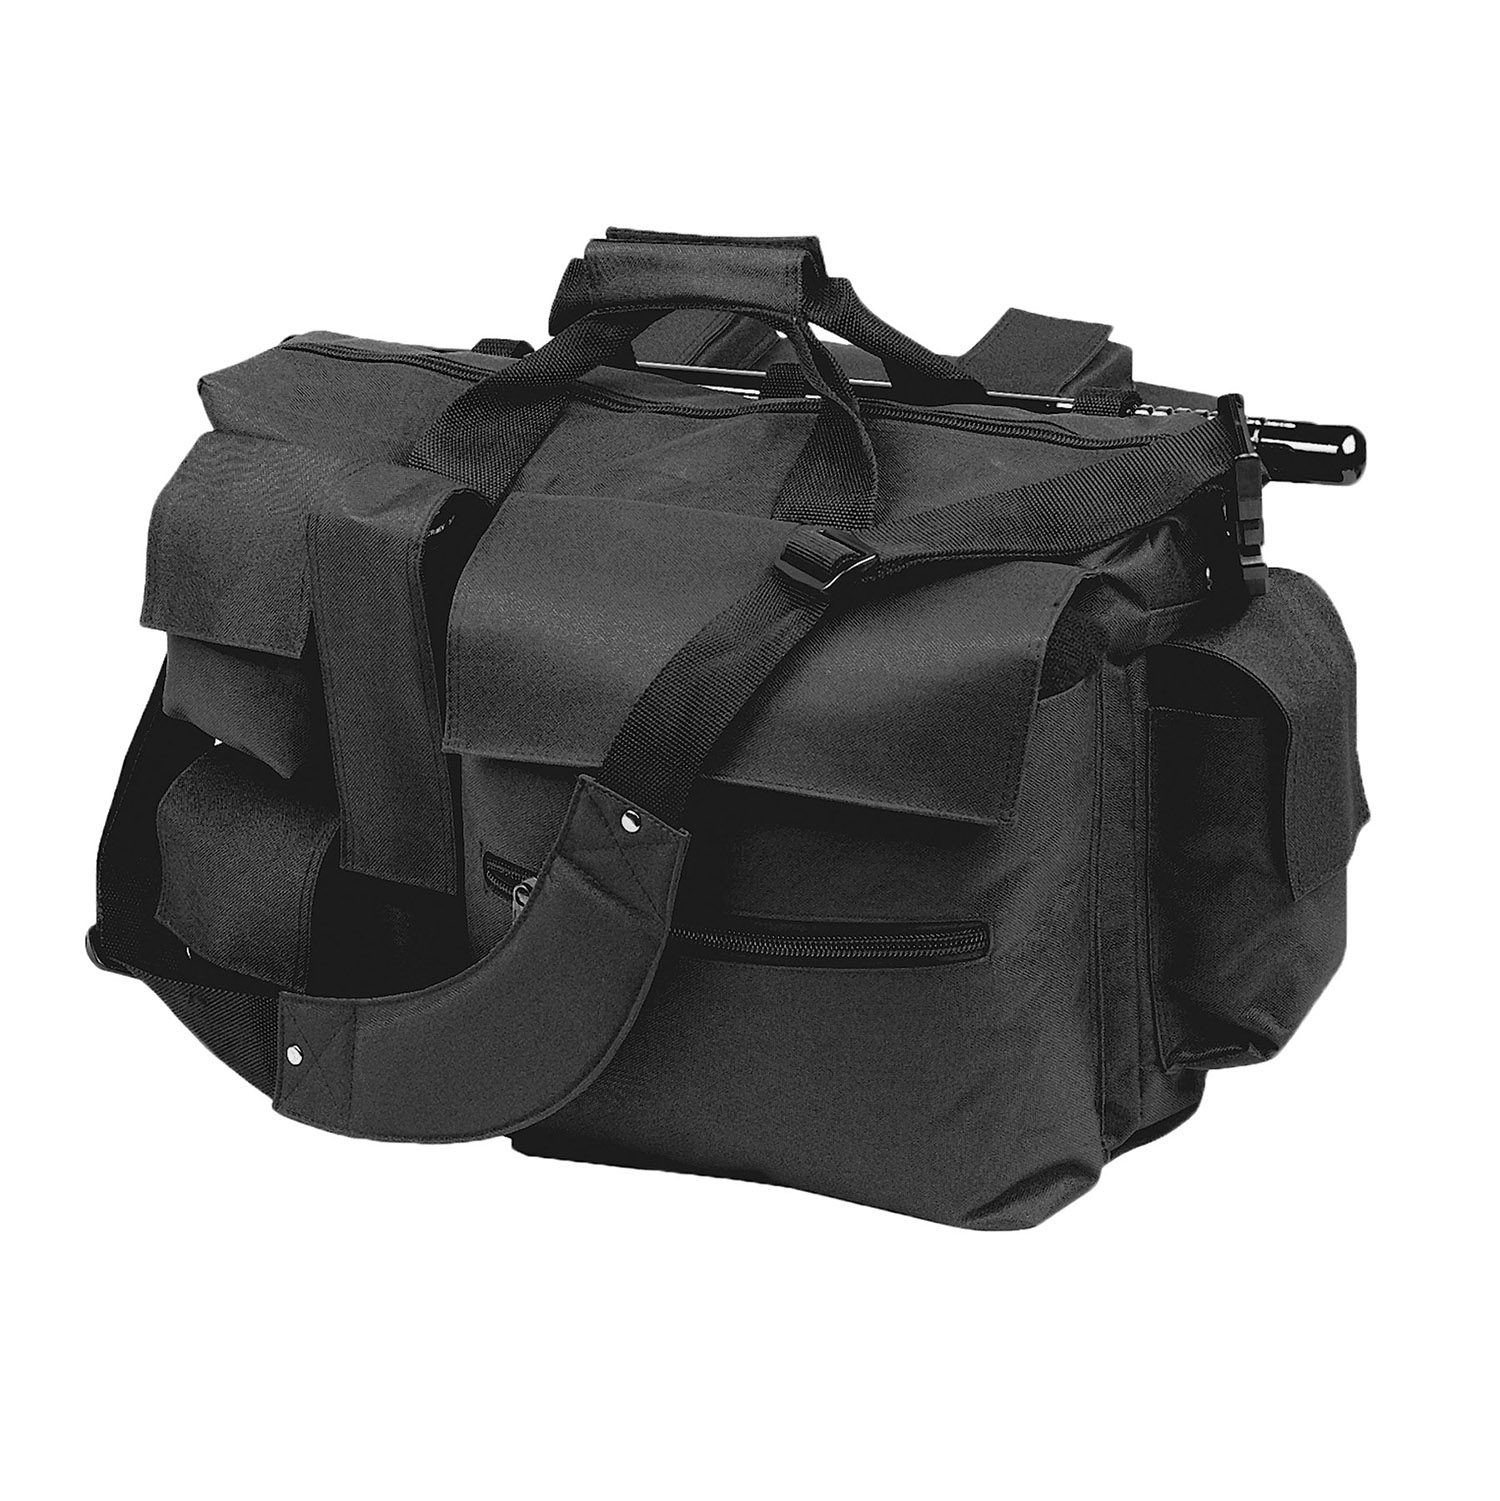 LawPro LAPD Ballistic Nylon War Bag